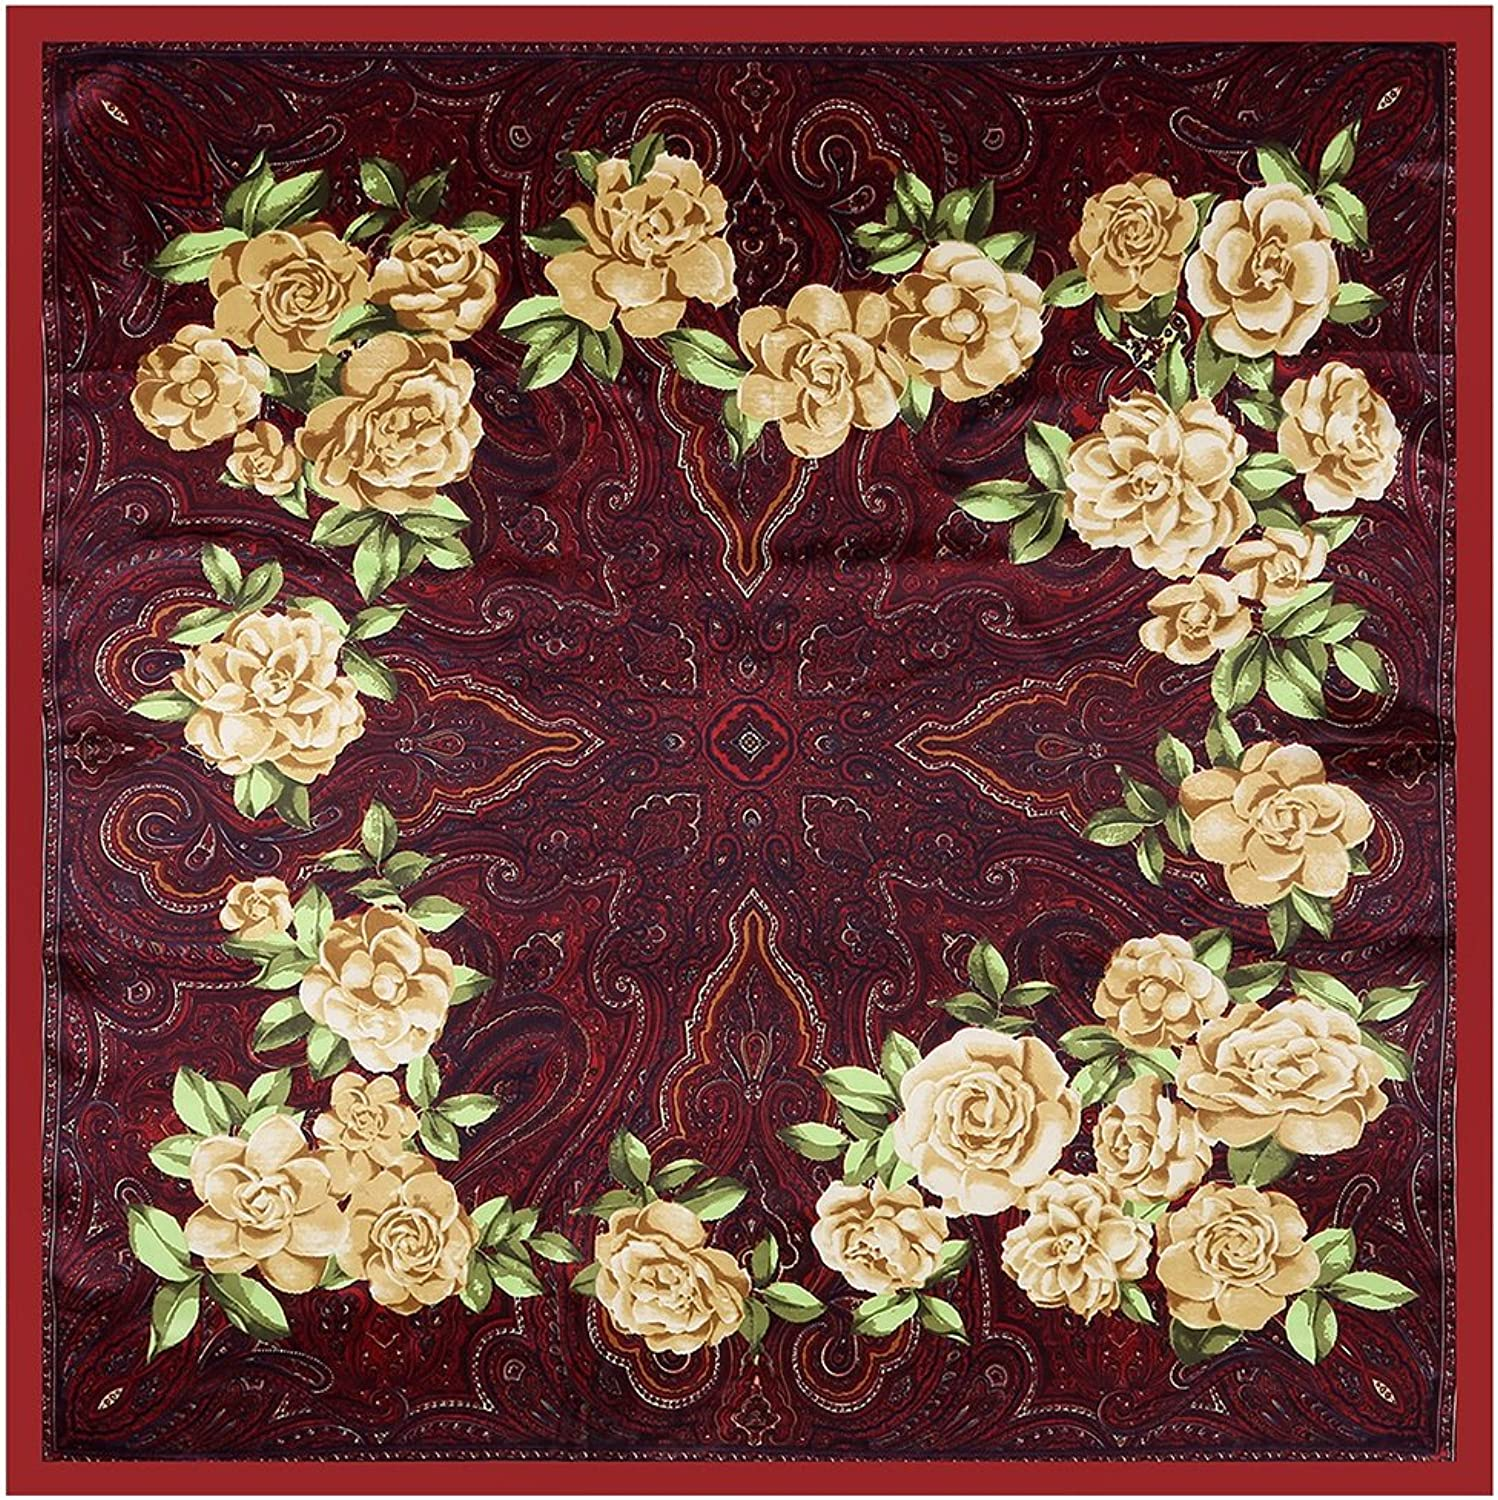 KTYX Printed Silk Scarf National Wind Shawl Large Square Scarf 90  90cm Scarf (color   Wine Red, Size   90  90CM)